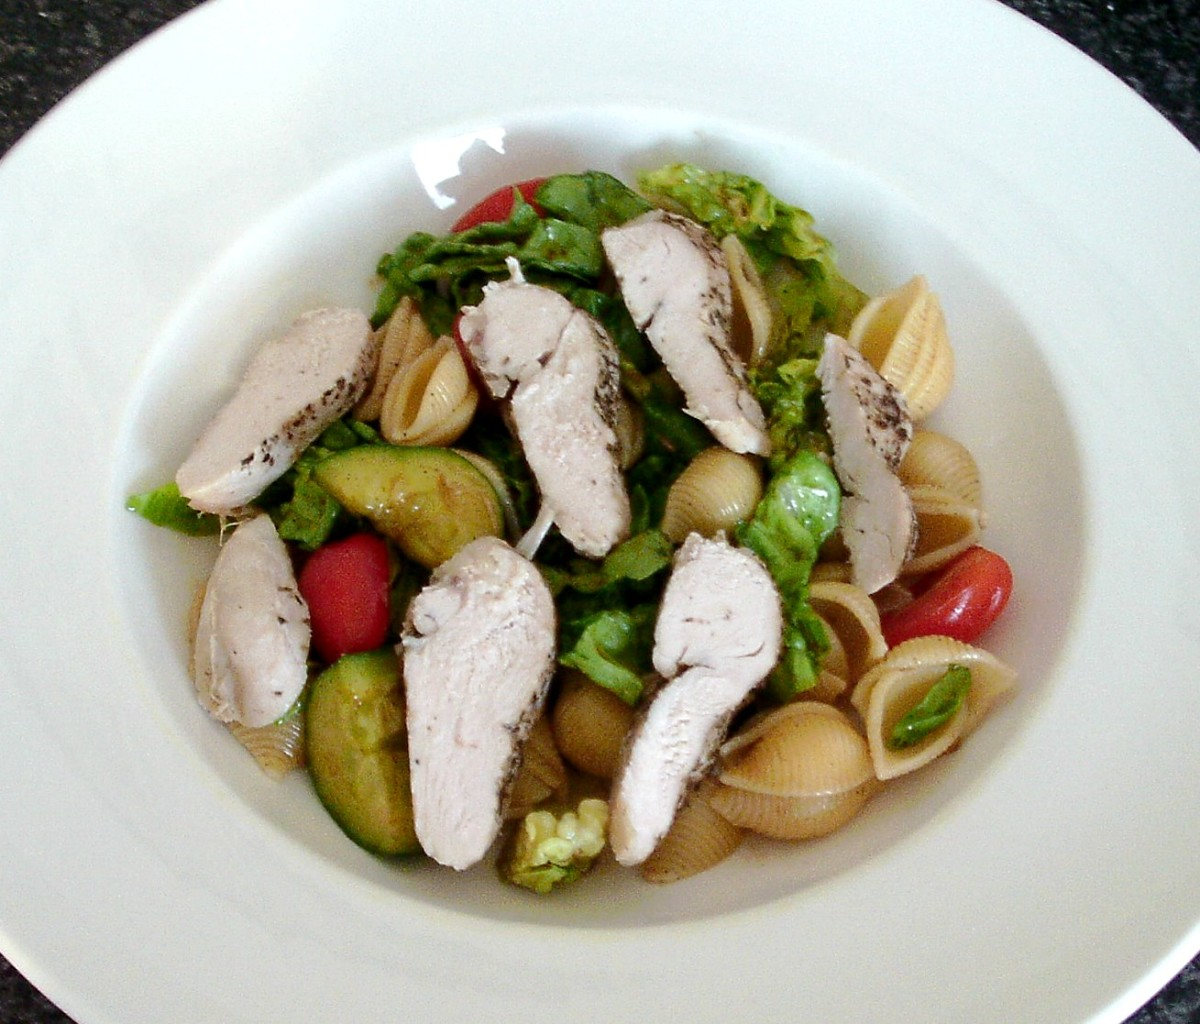 Cold Chicken Breast and Conchiglie Pasta Salad Recipe